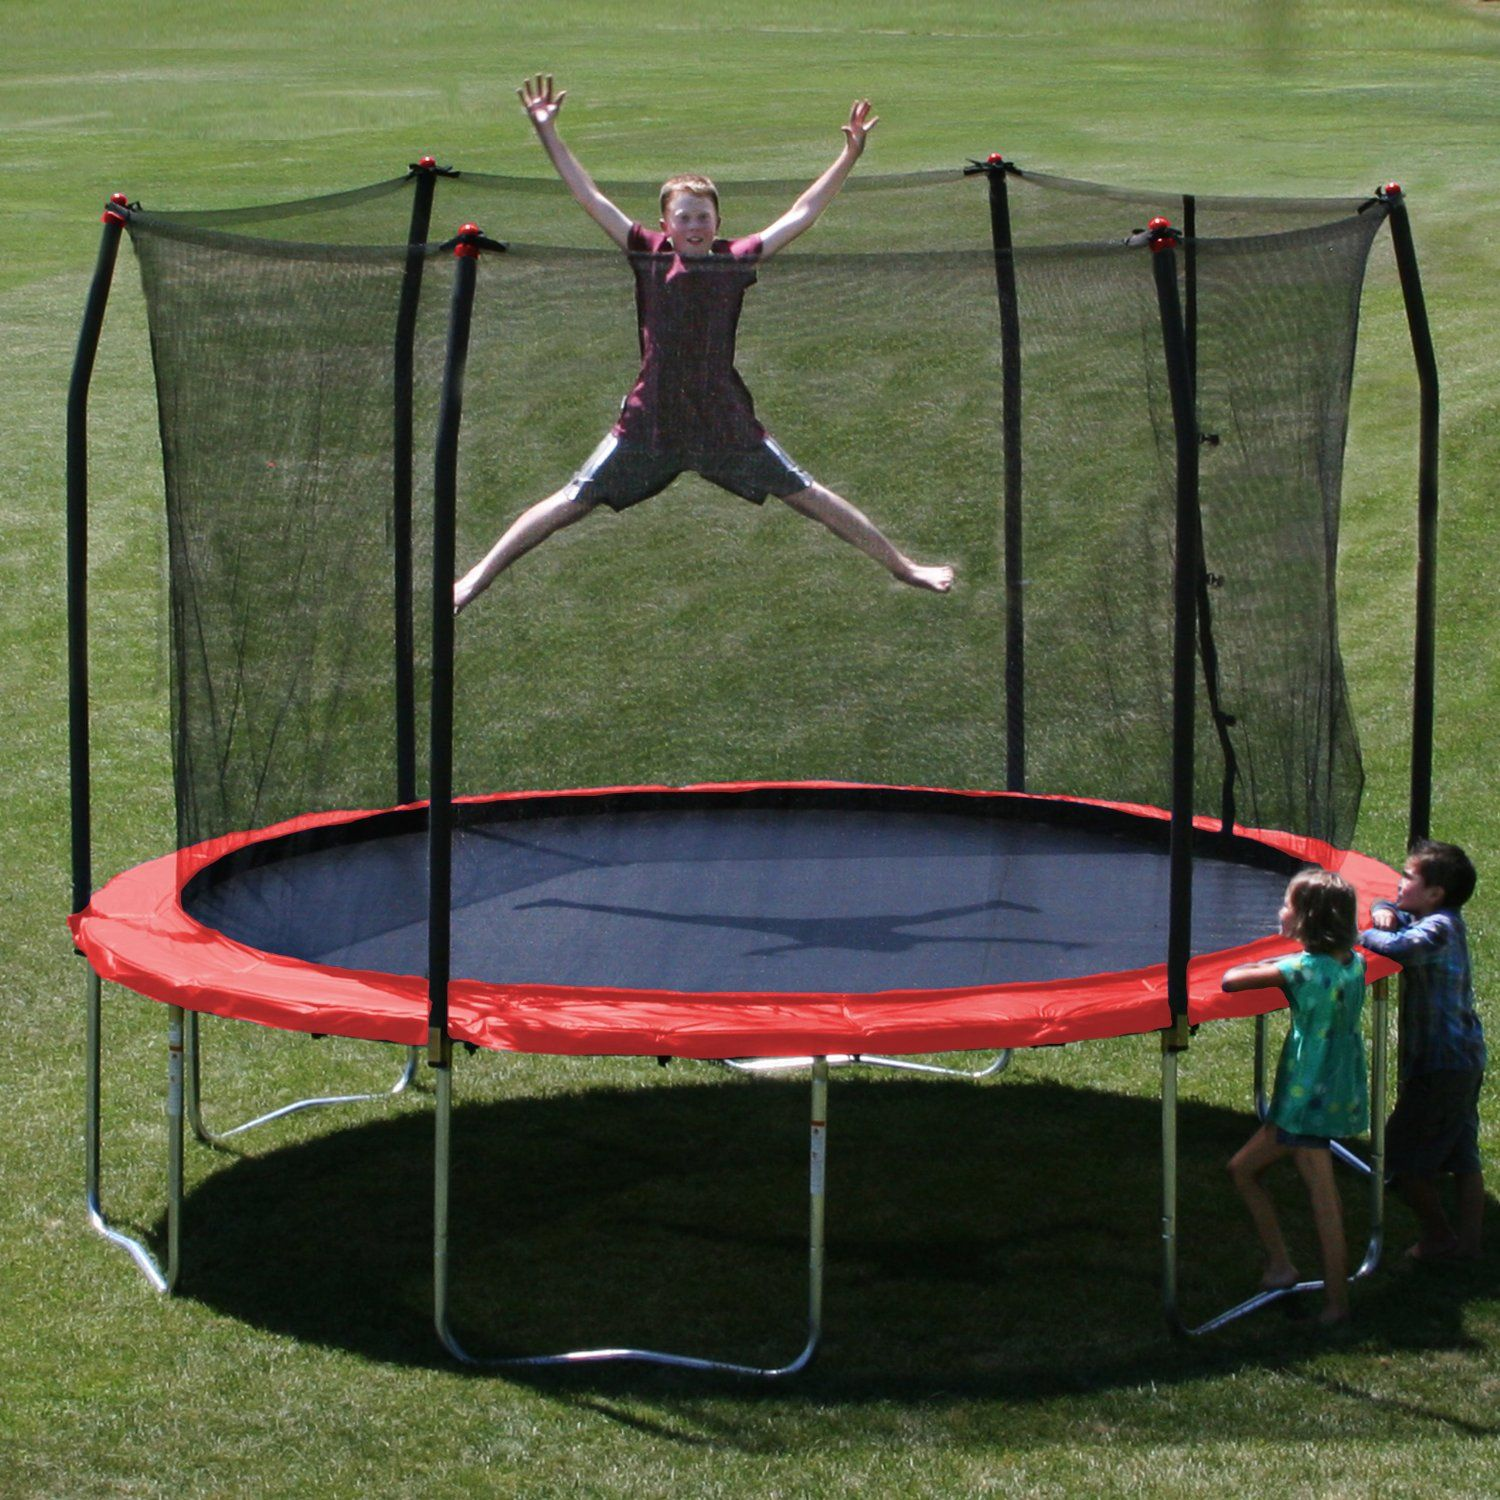 skywalker trampolines 12 feet round trampoline and enclosure with